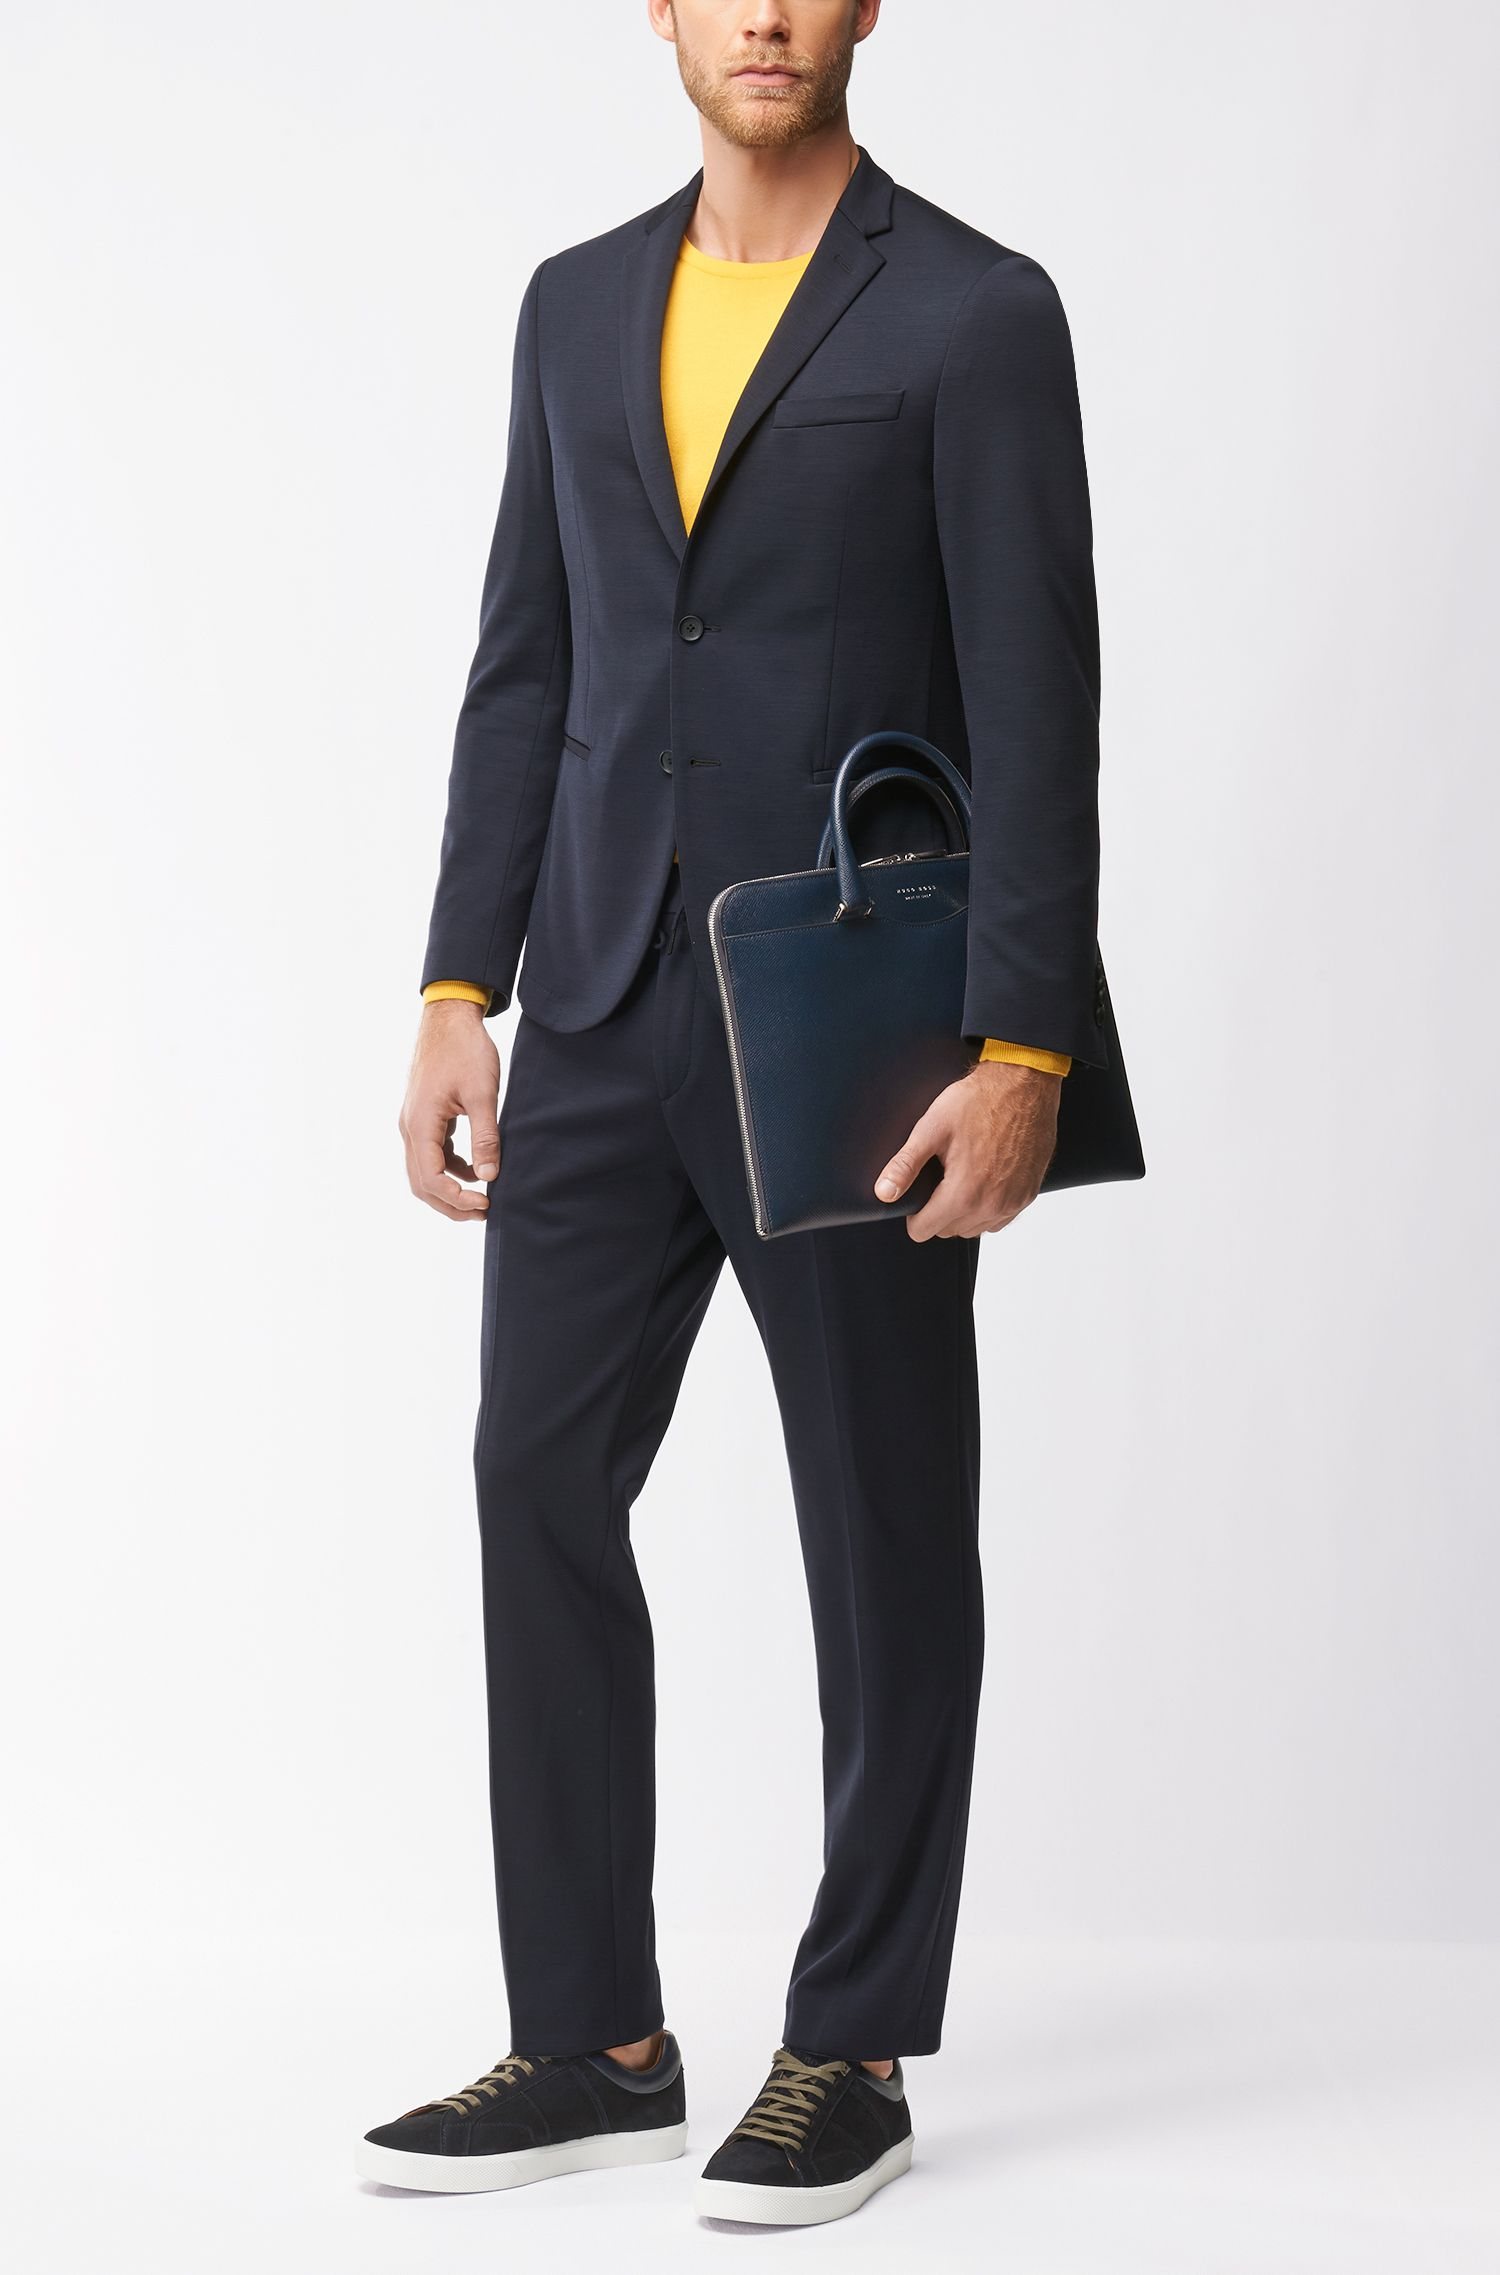 Leather Portfolio Case | Signature Folio Slim